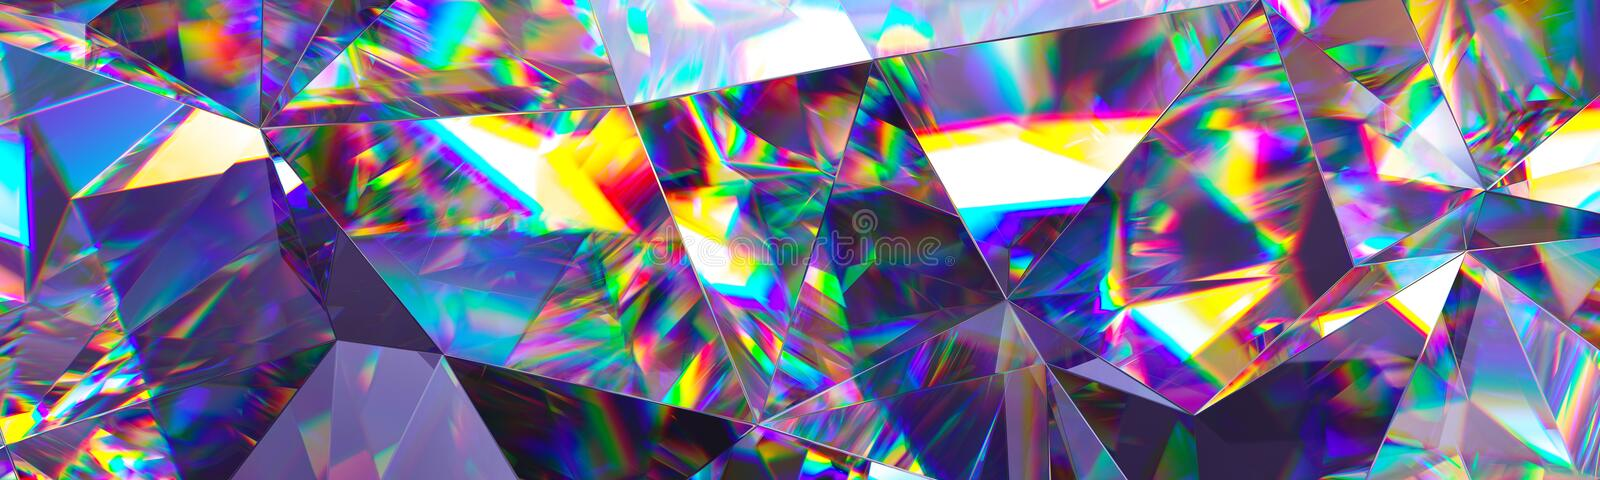 3d render, abstract crystal background, iridescent texture, macro panorama, faceted gem, wide panoramic polygonal wallpaper stock illustration